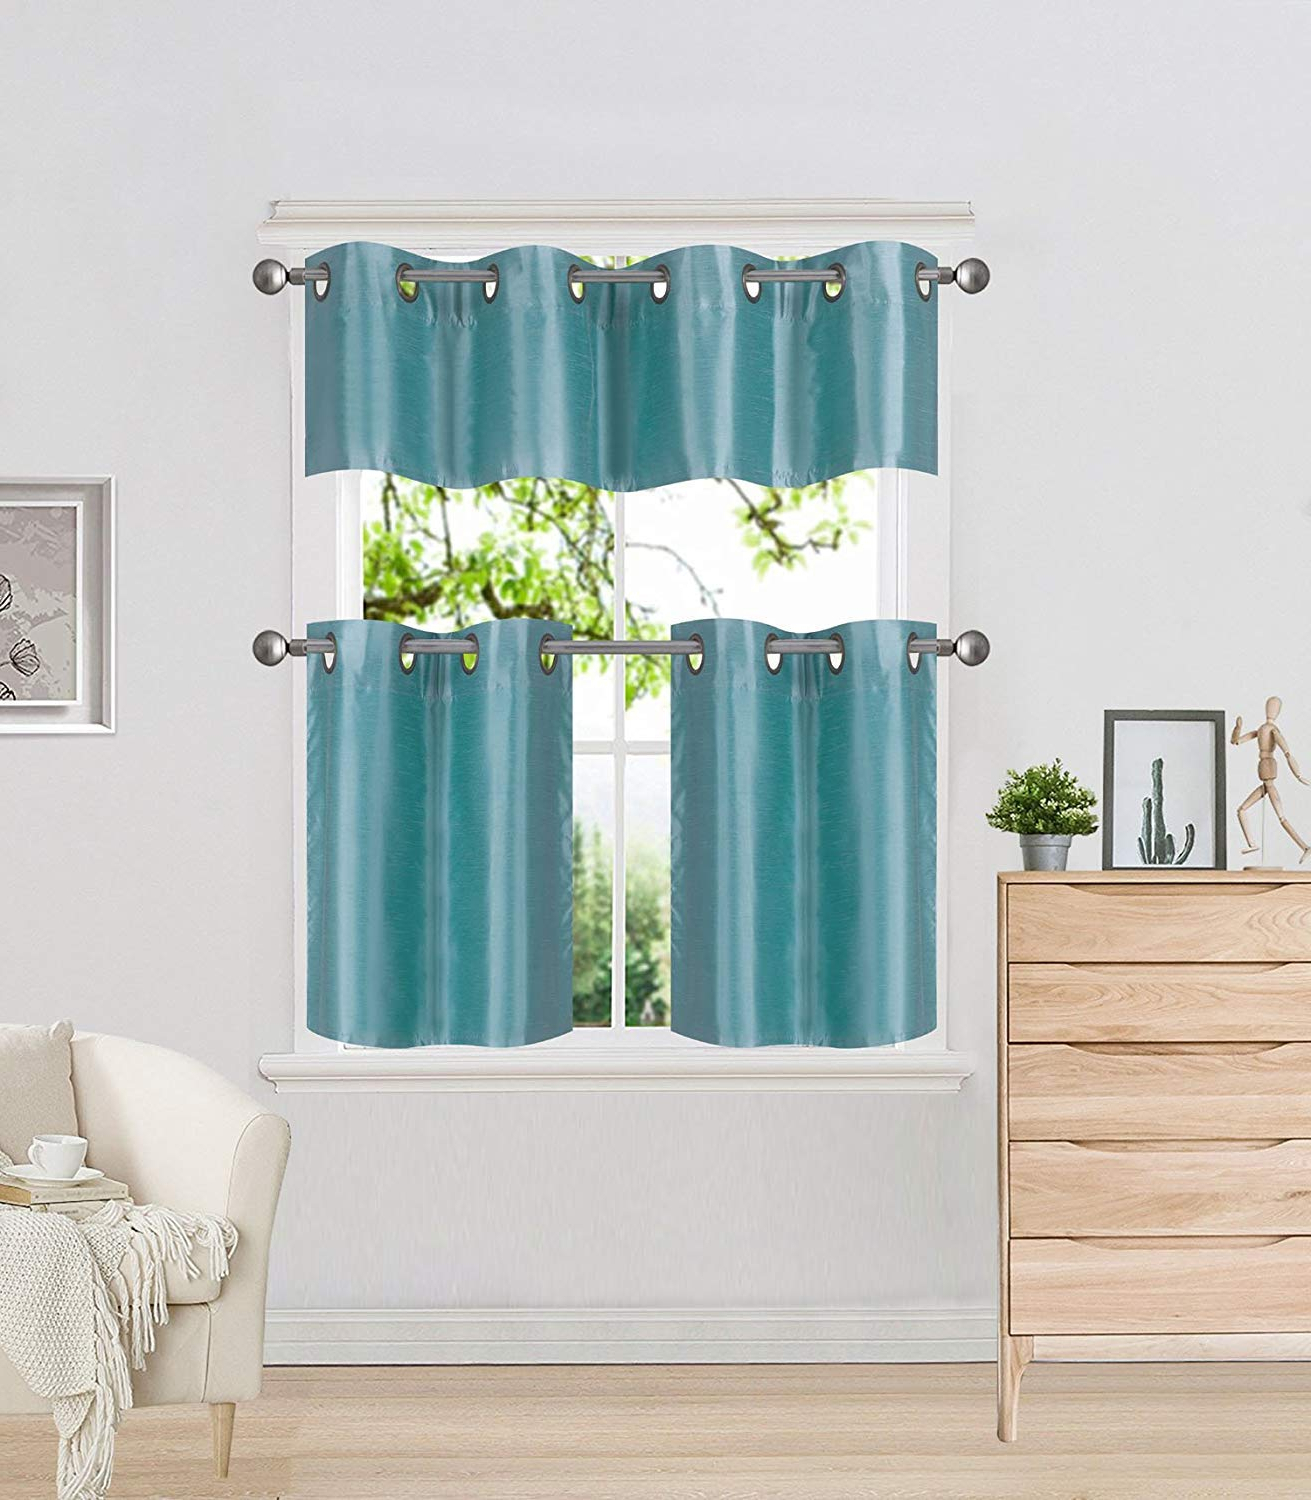 2020 Diamondhome 3 Piece Faux Silk Grommet Lined Thermal Blackout Kitchen Window  Curtain Set 2 Tiers & 1 Valance (Teal) Pertaining To Faux Silk 3 Piece Kitchen Curtain Sets (View 1 of 20)